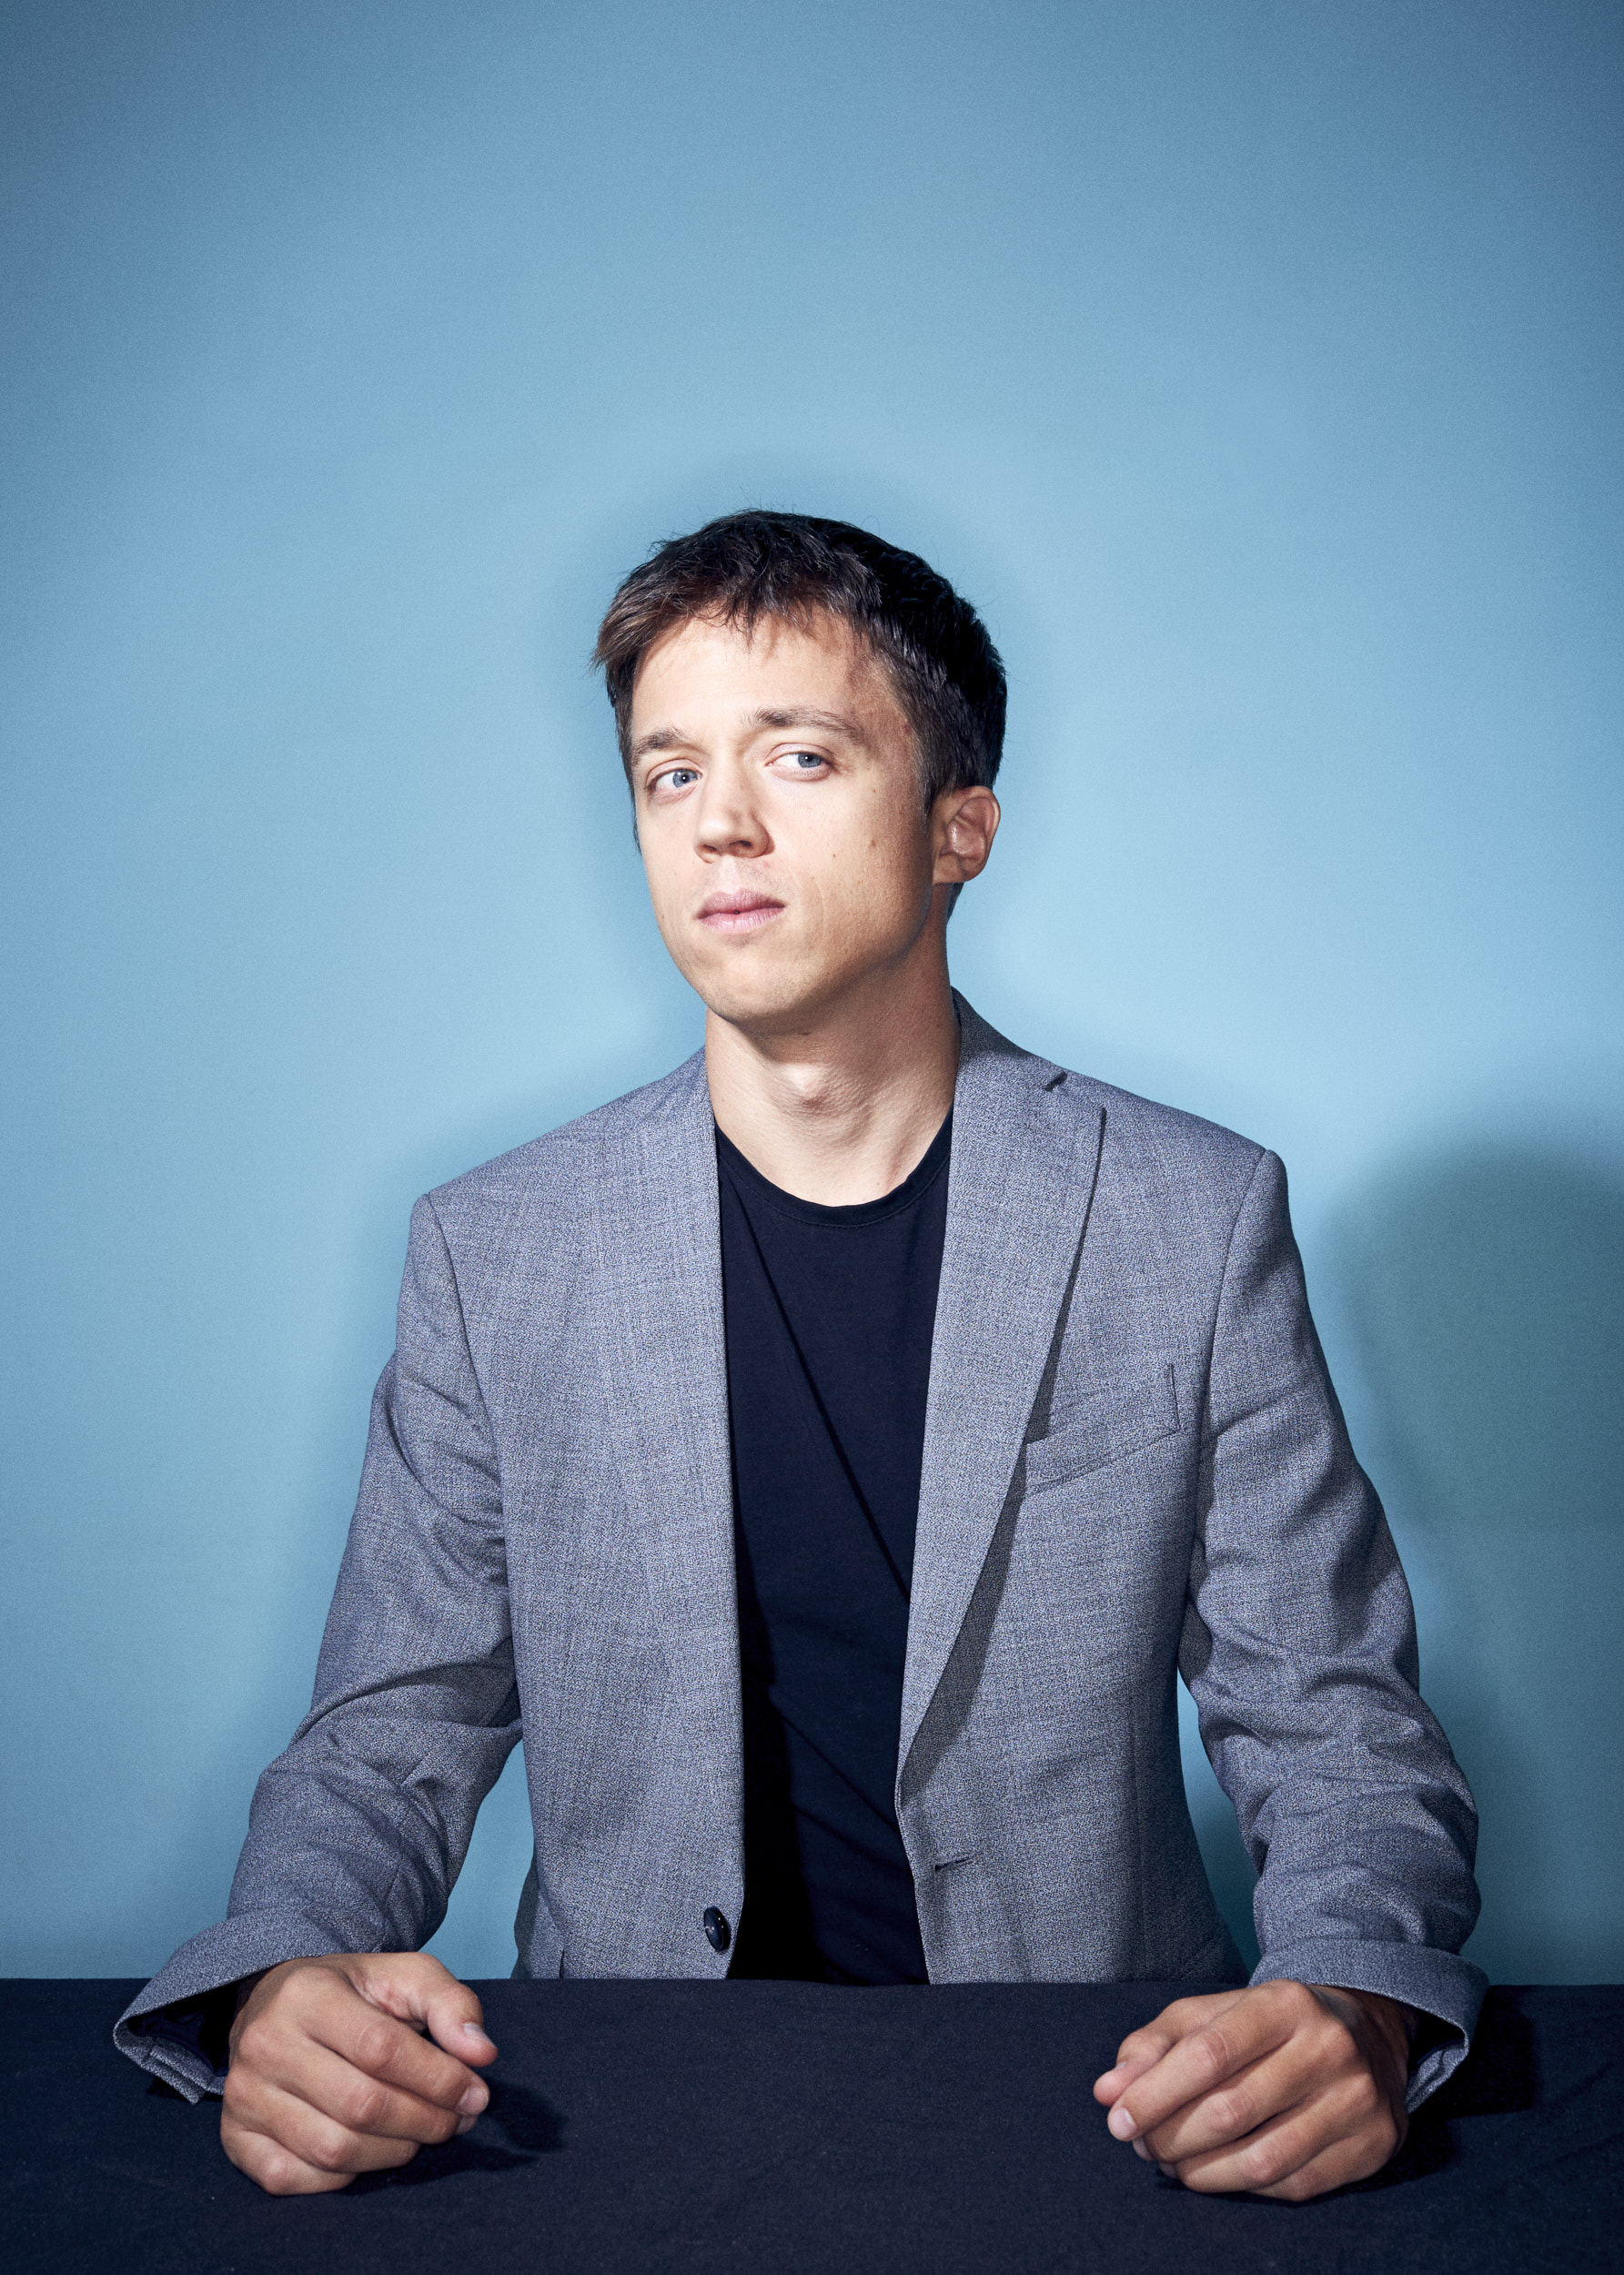 Íñigo Errejón. Portrait by Jacobo Medrano for Man on the Moon magazine.